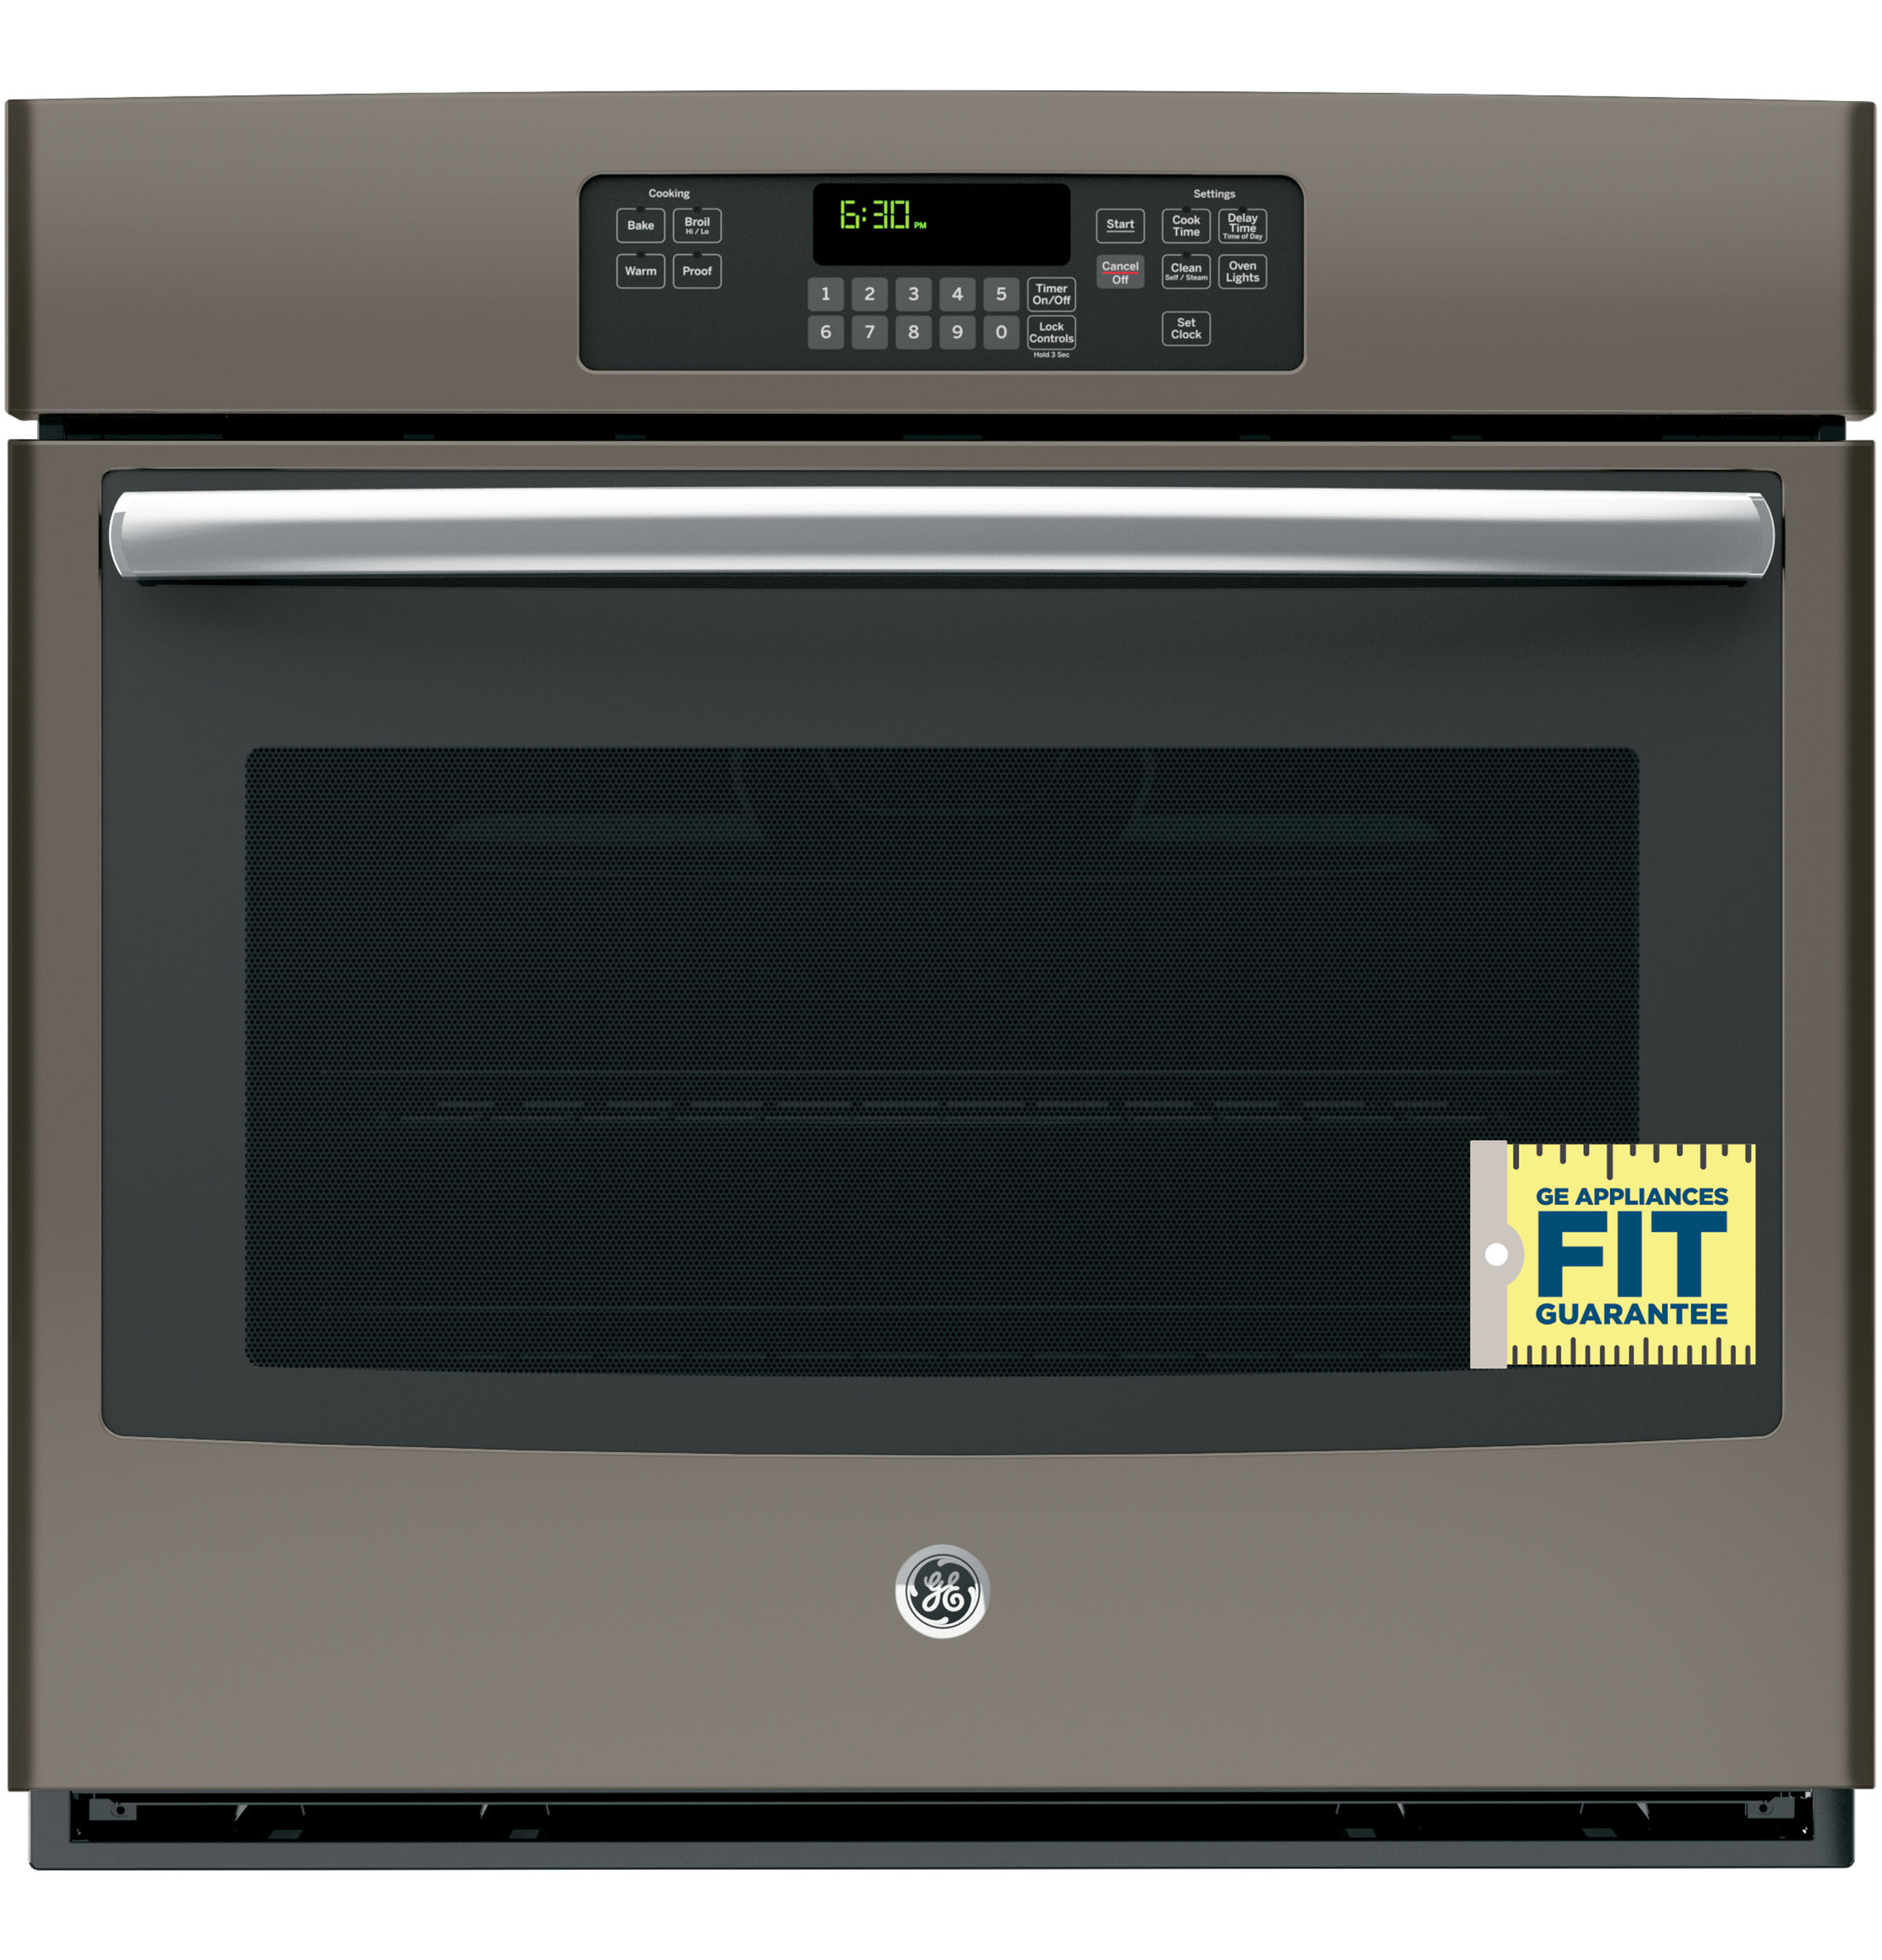 Ge 30 Built In Single Wall Oven Jt3000ejes Appliances Want To Install A New 40 Amp Have 50 Circuit 1 Of 6